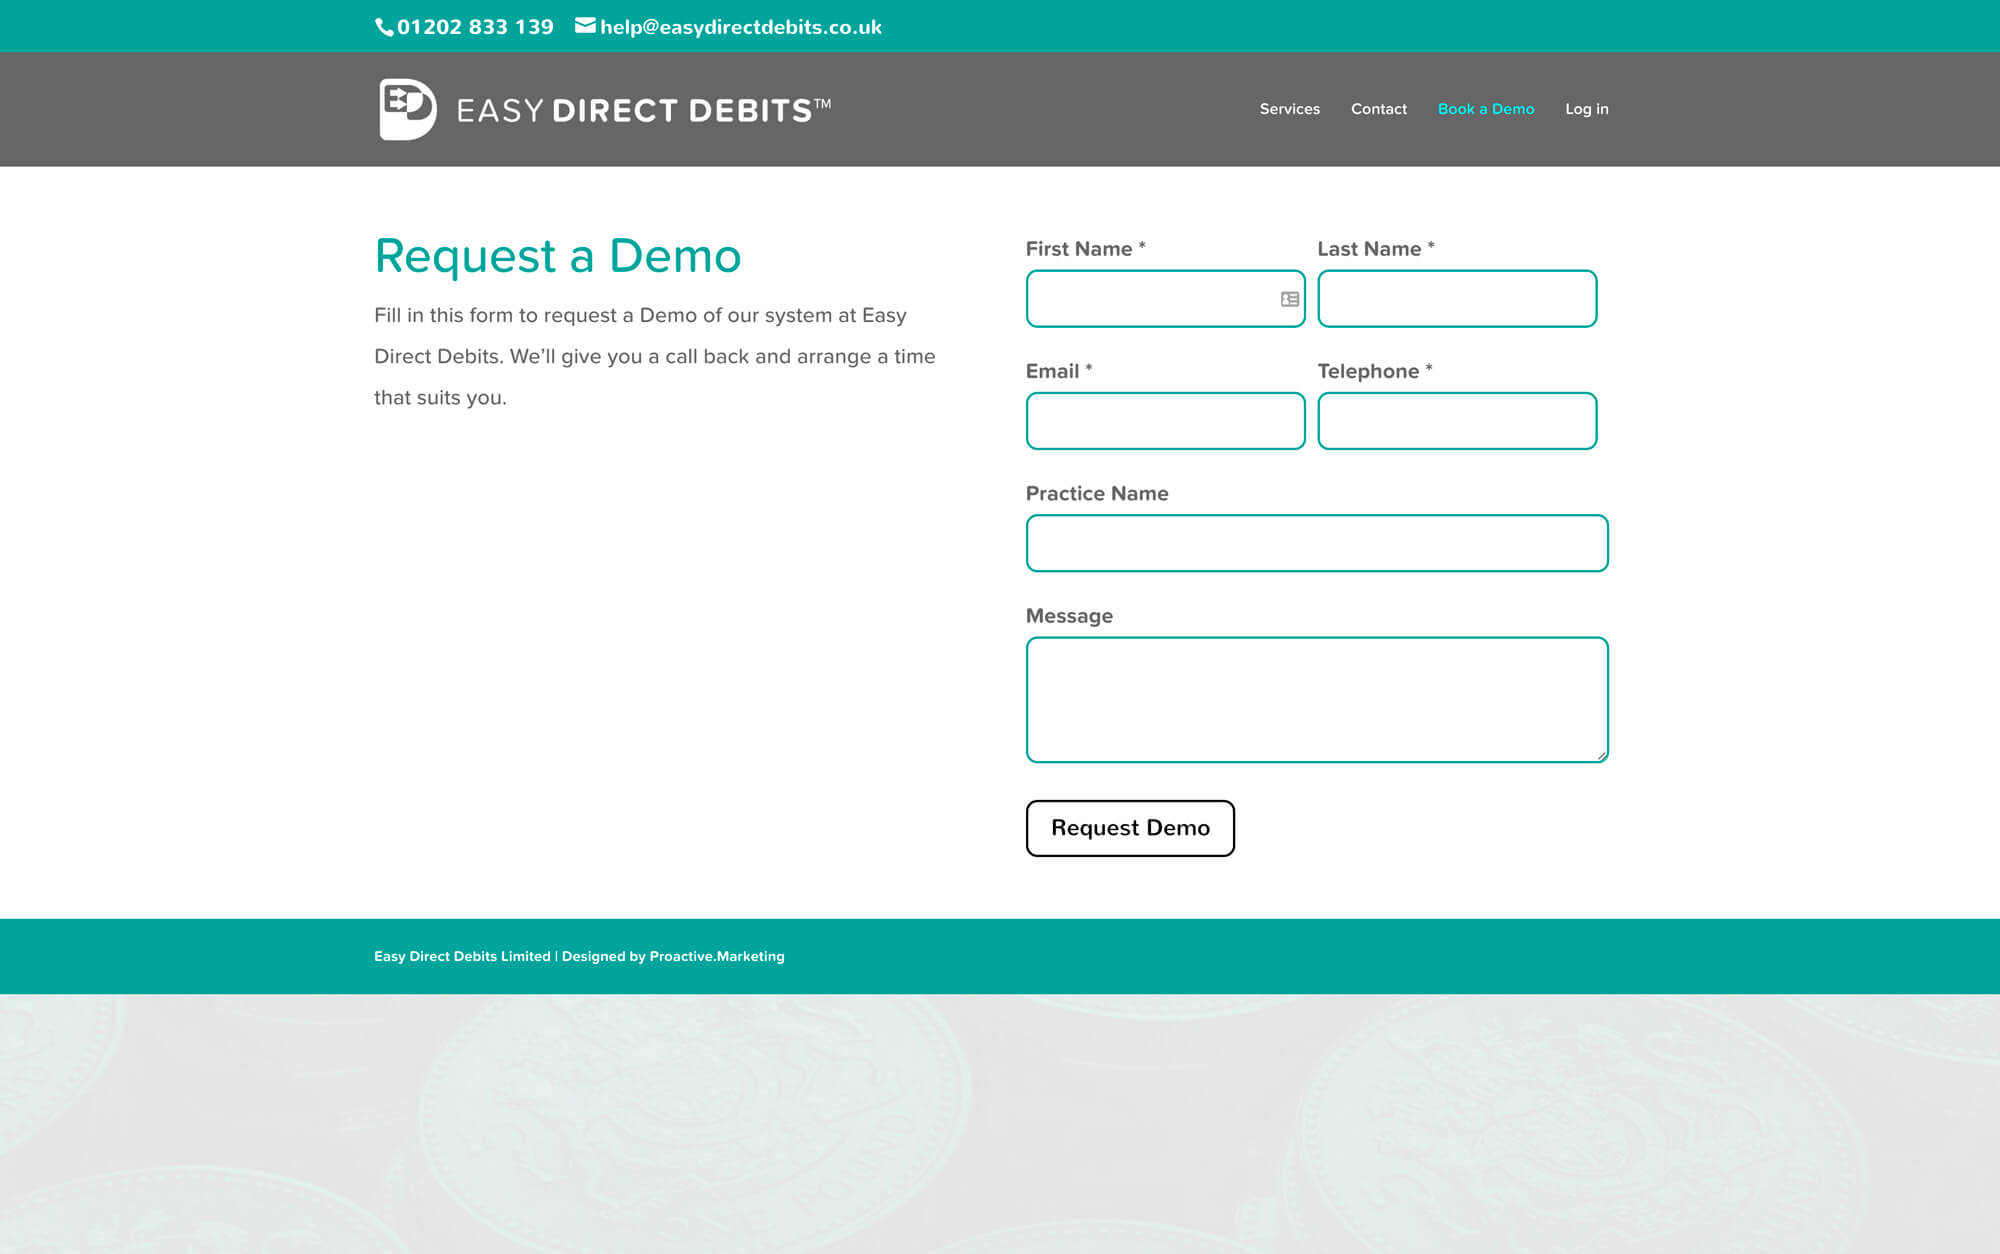 Easy Direct Debits: financial website design - Request a demo page